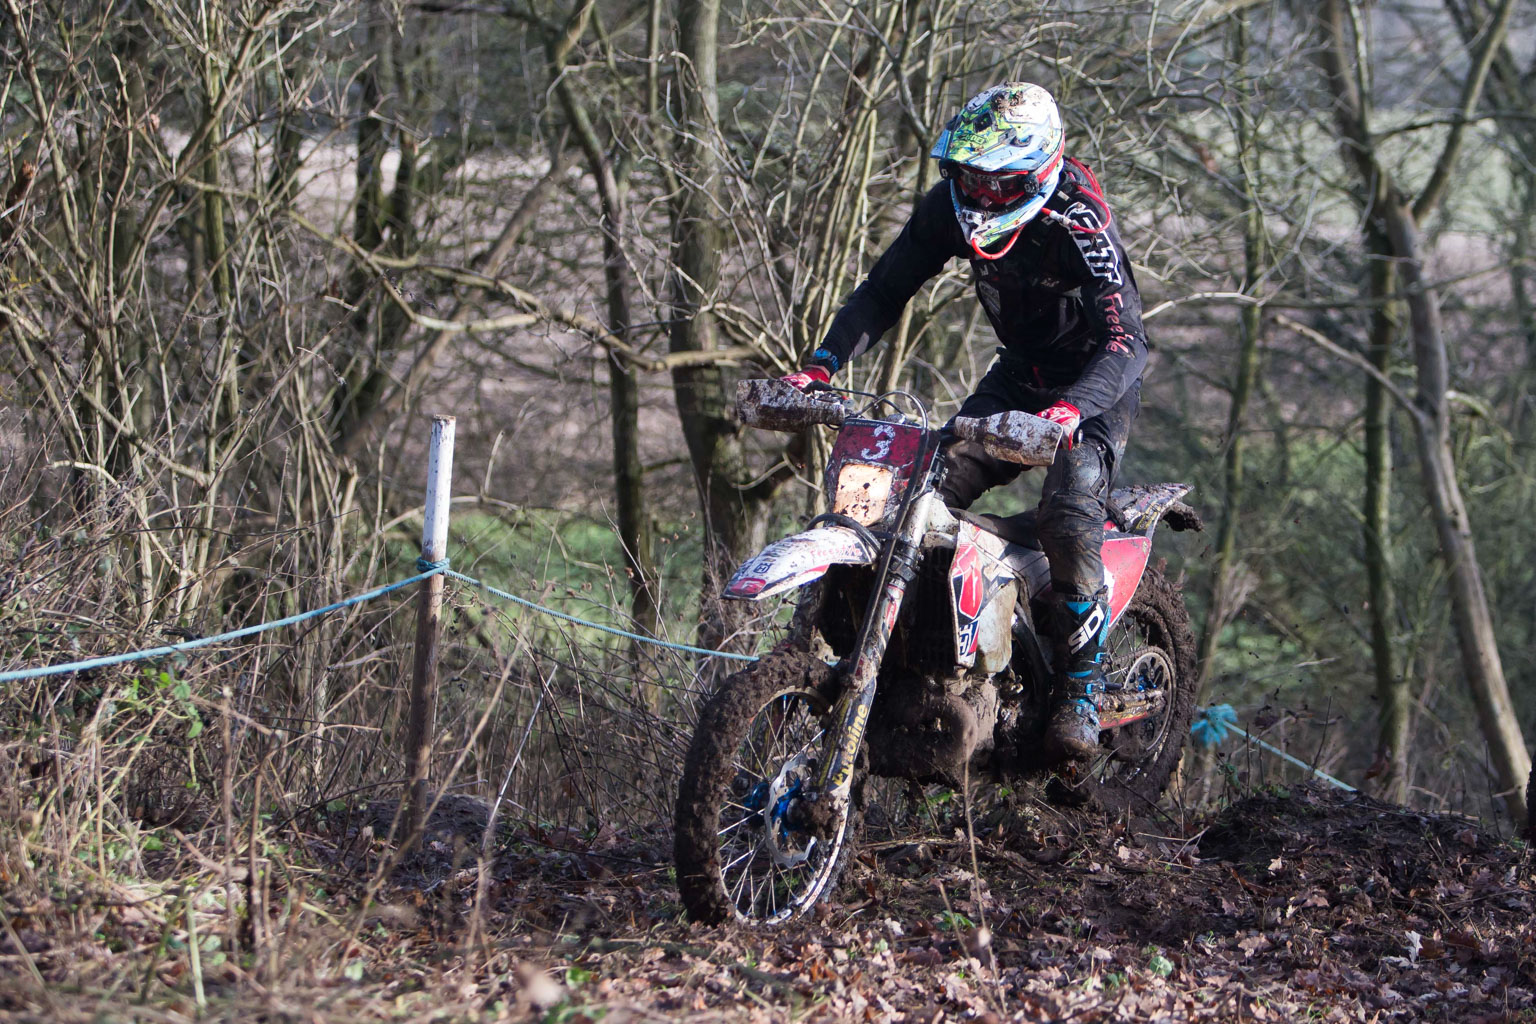 No wobbles as Wibberley takes second